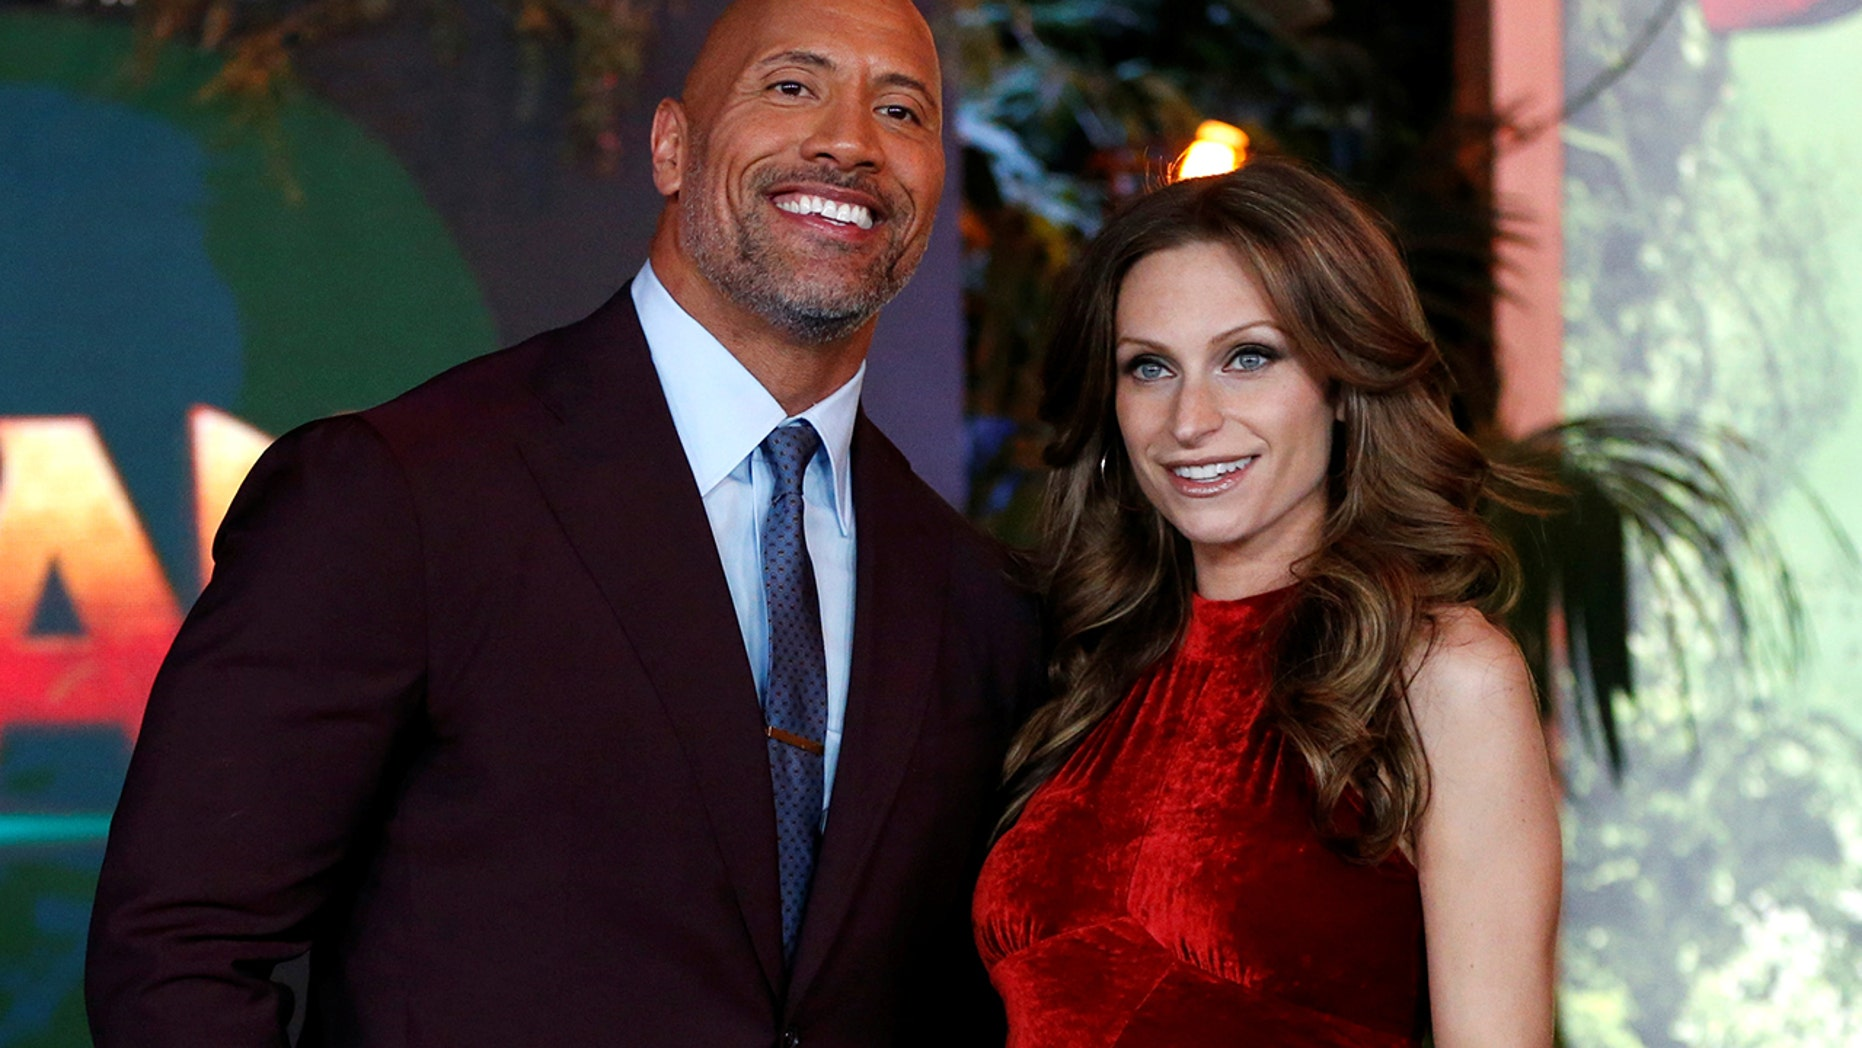 """Cast member Dwayne Johnson and Lauren Hashian pose at the premiere for """"Jumanji: Welcome to the Jungle"""" in Los Angeles, California, U.S., December 11, 2017."""